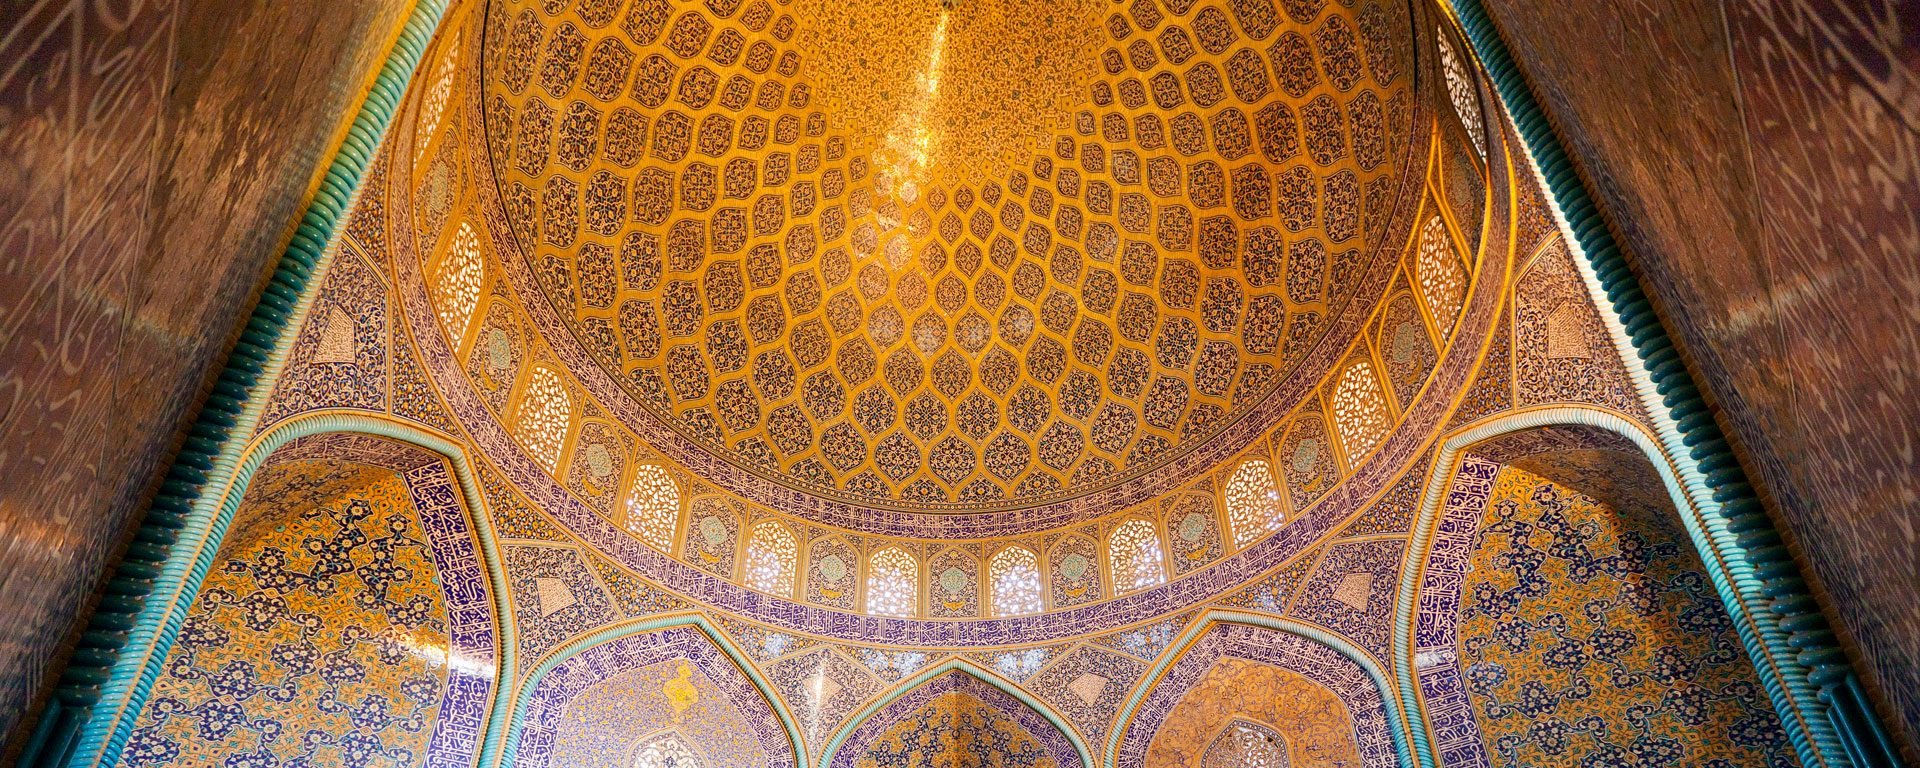 The golden interior dome of the Sheikh Lotfollah Mosque in Esfahan, Iran